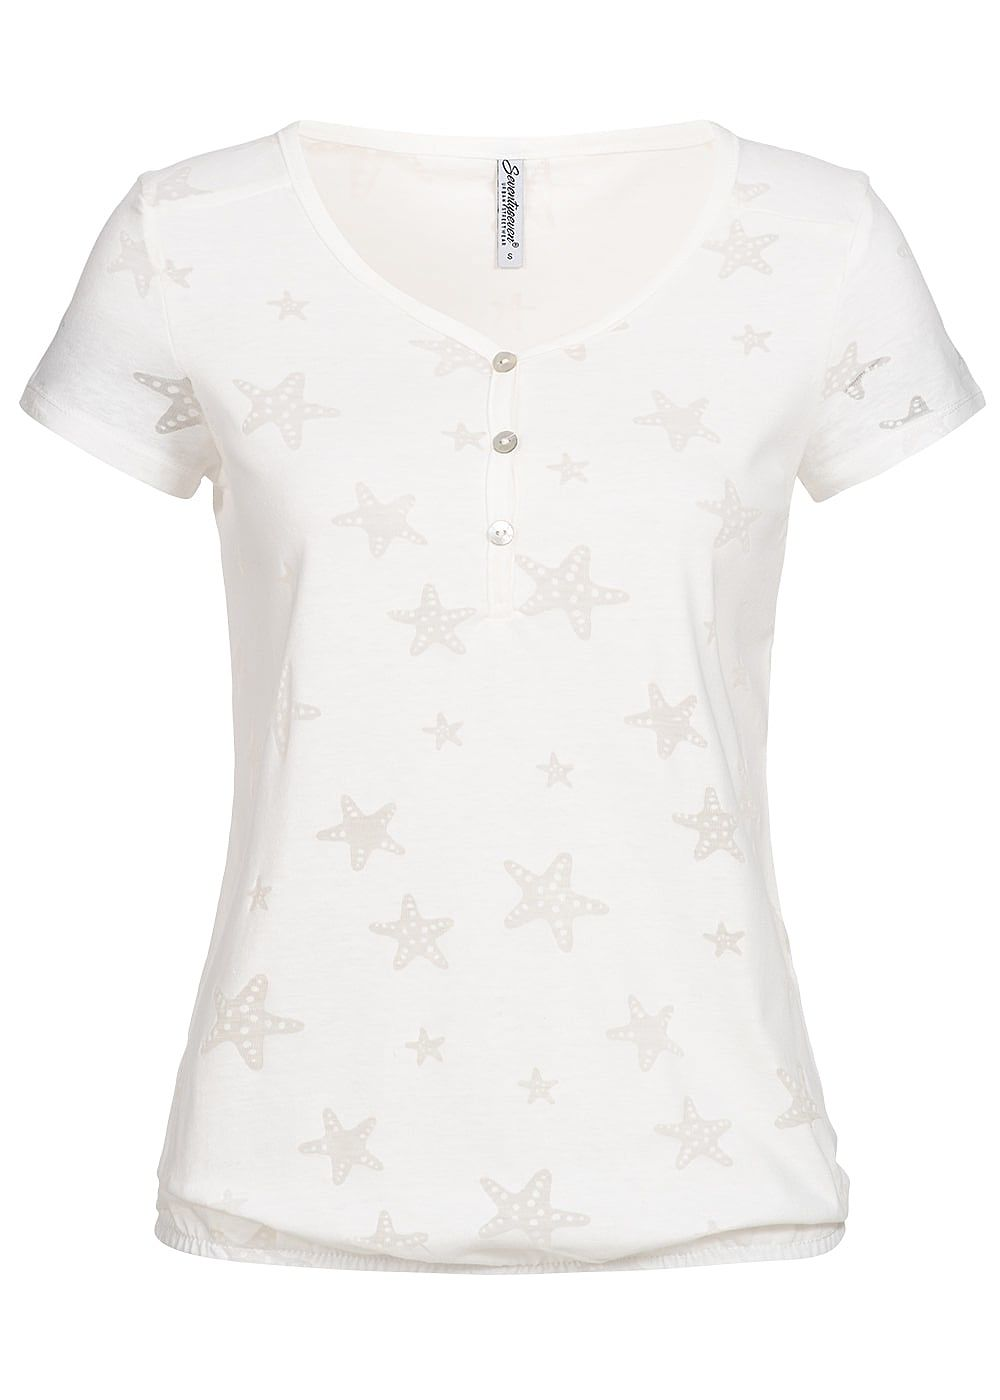 Seventyseven Lifestyle Damen T-Shirt Mesh Stars off weiss - Art.-Nr.: 19049034